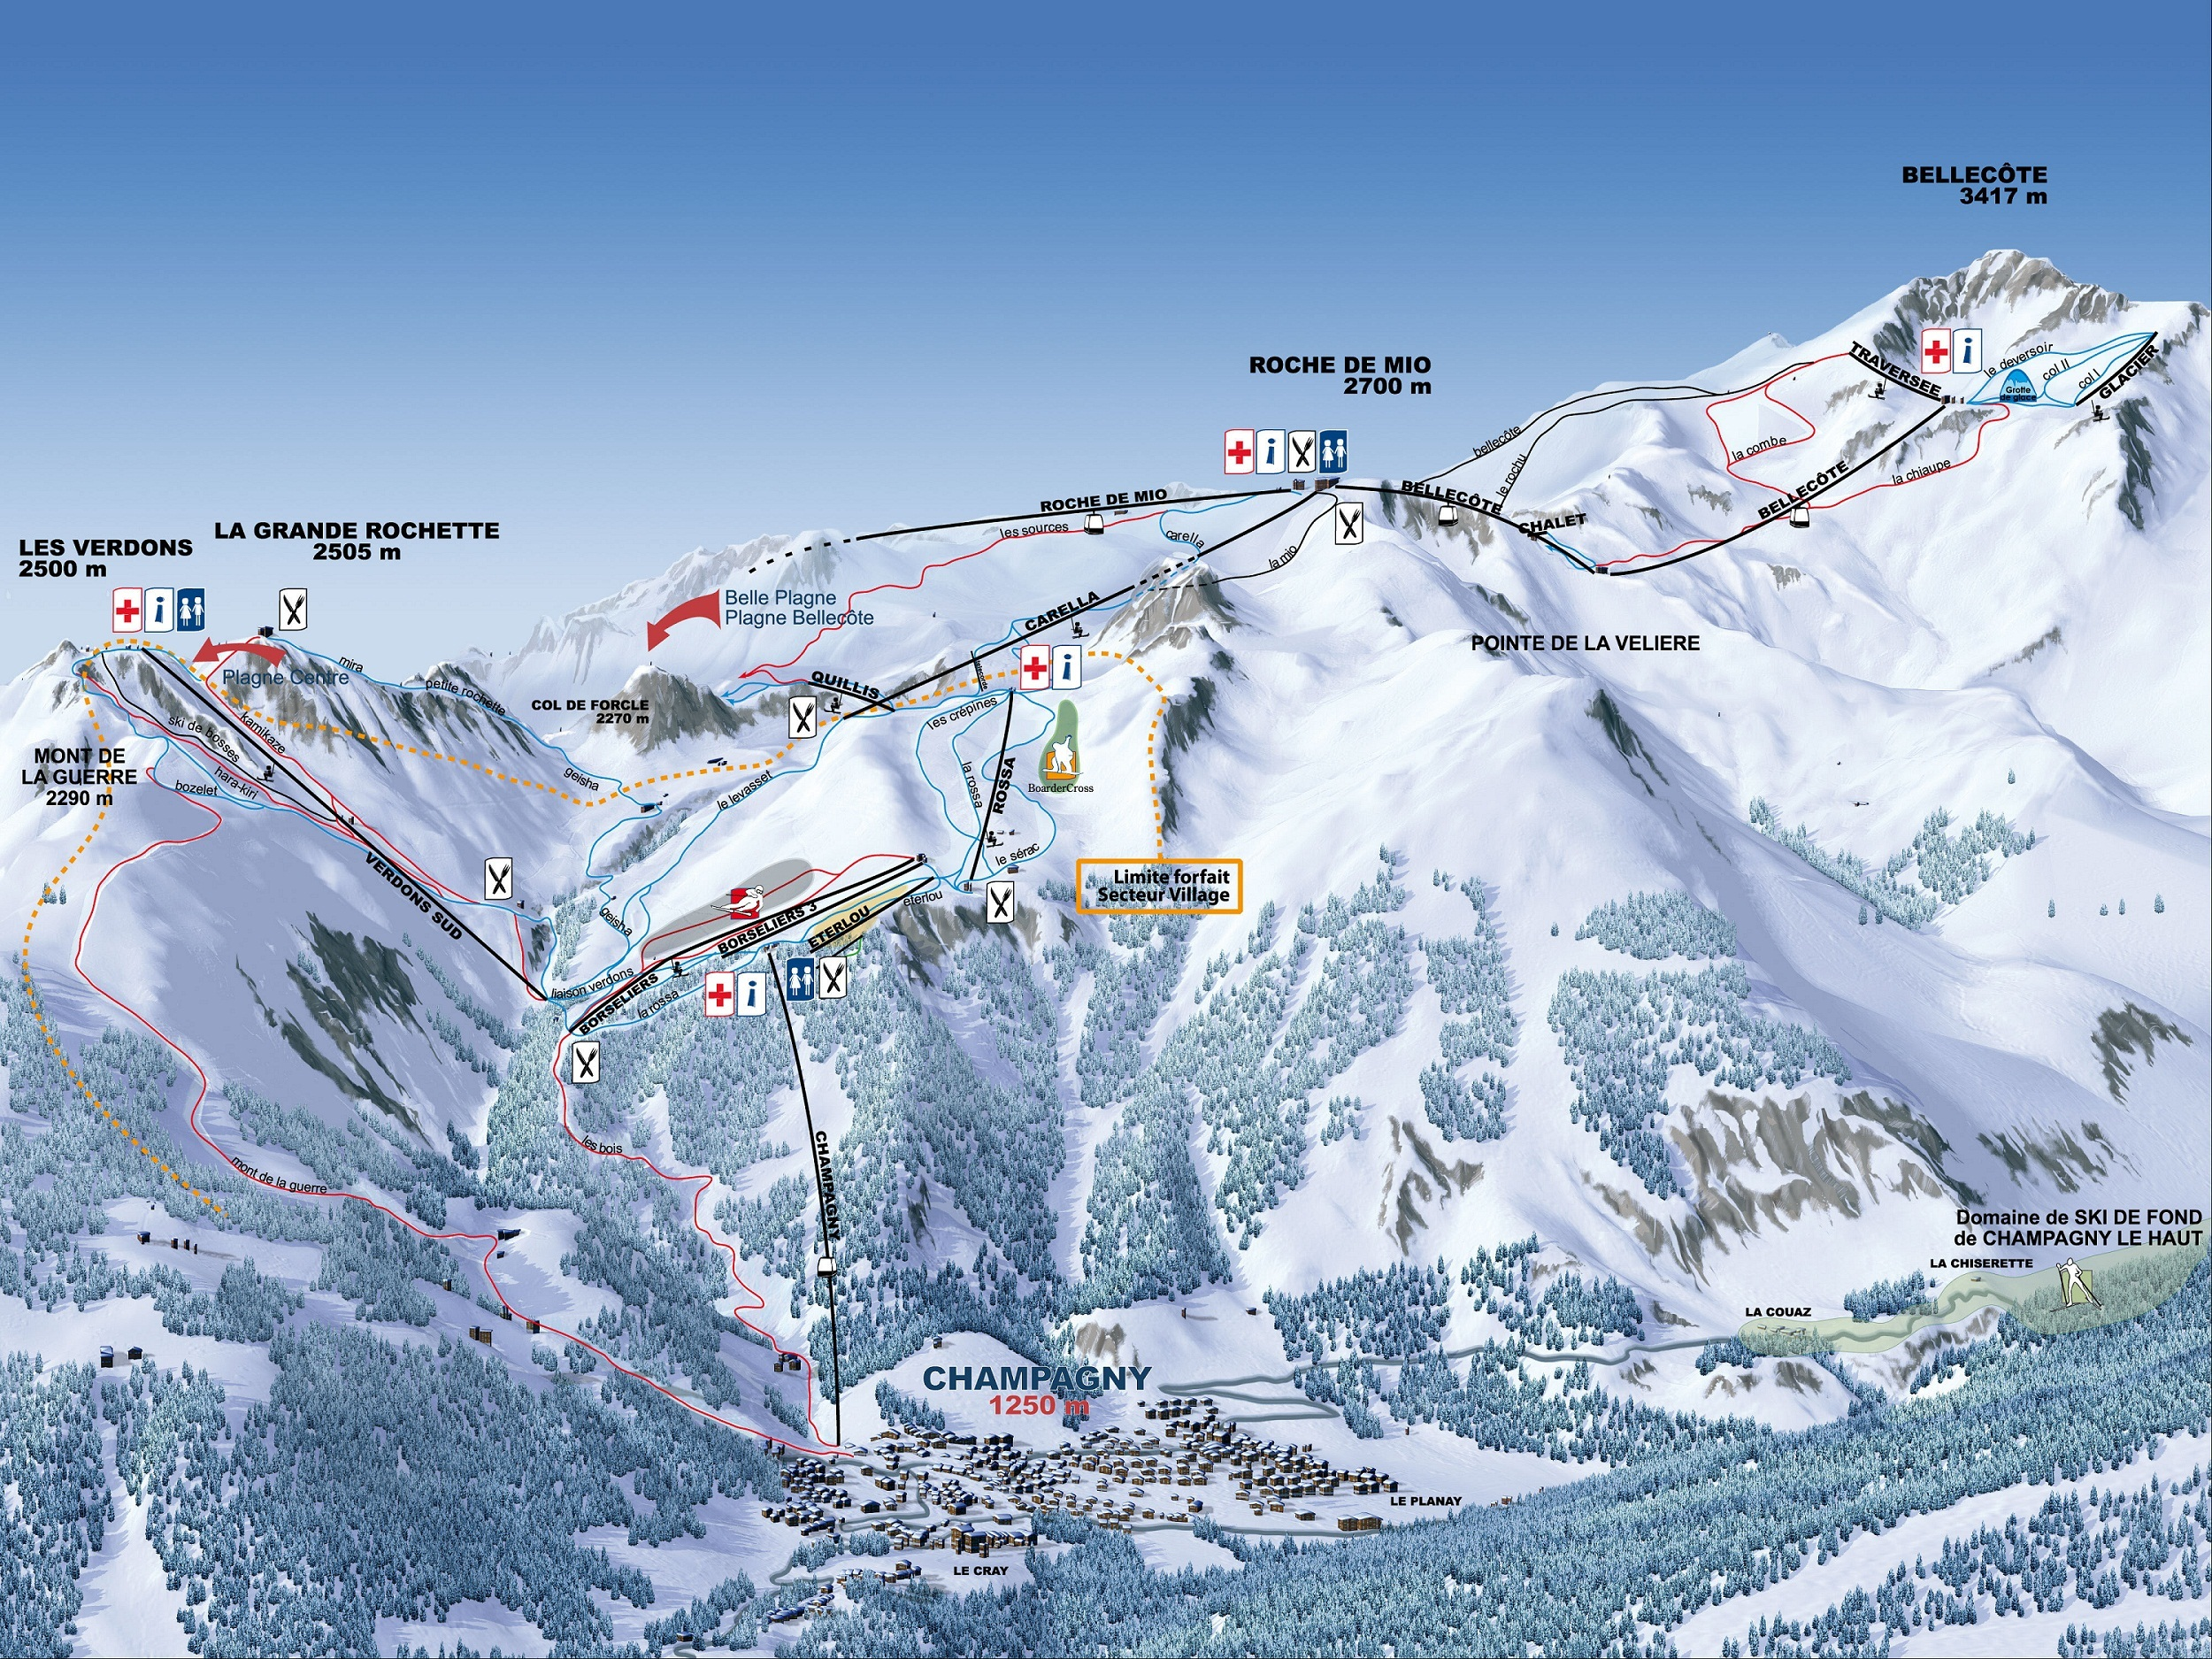 Champagny en Vanoise Piste Map Plan of ski slopes and lifts